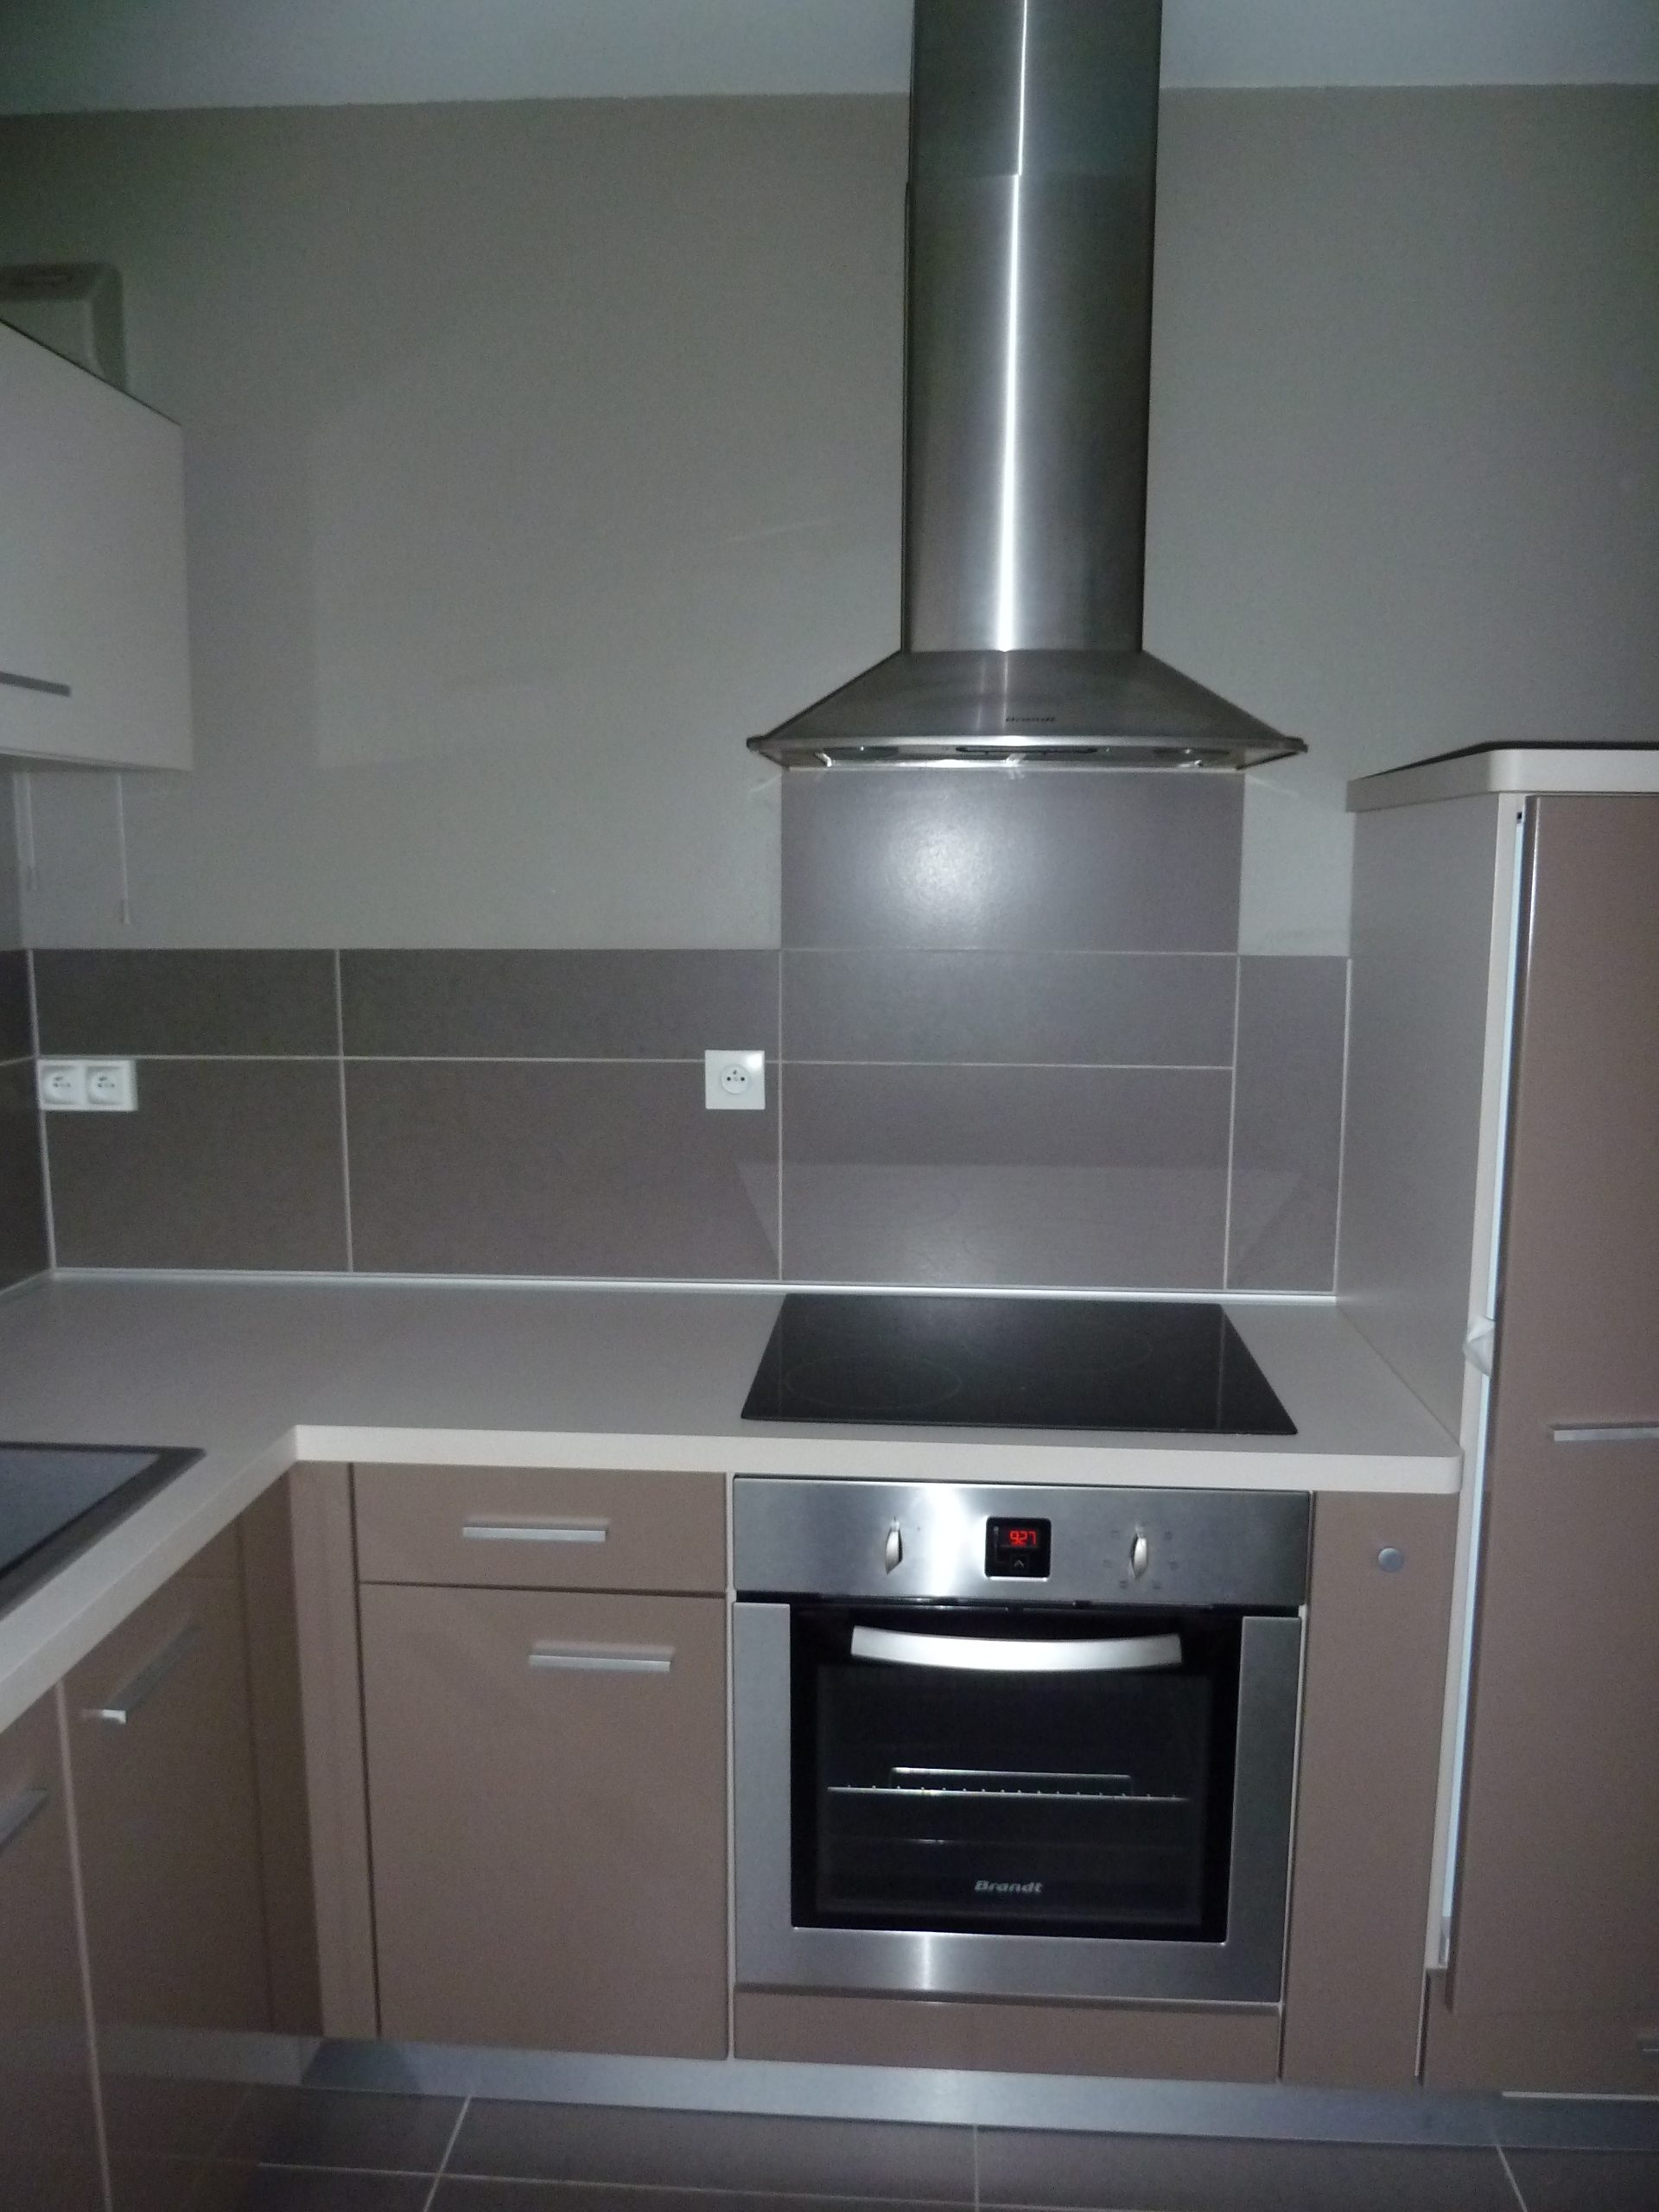 Dcoration dintrieur dun studio en appartement F1  Mulhouse  Atelier Homrique